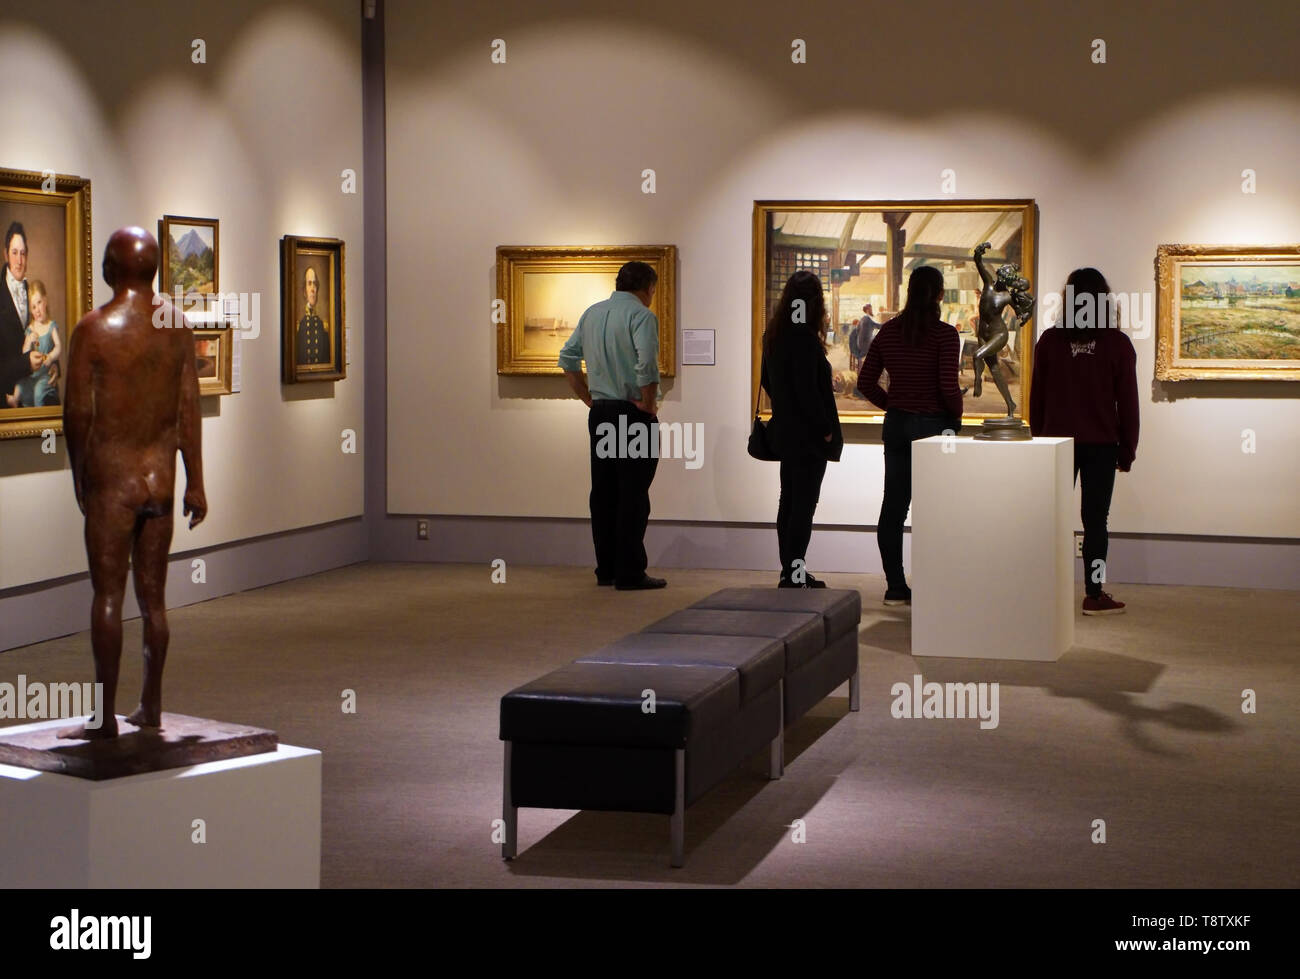 Storrs, CT USA. Oct 2018. Visitors admiring the many works of art at the William Benton Museum of Art on the campus of the University of Connecticut. - Stock Image